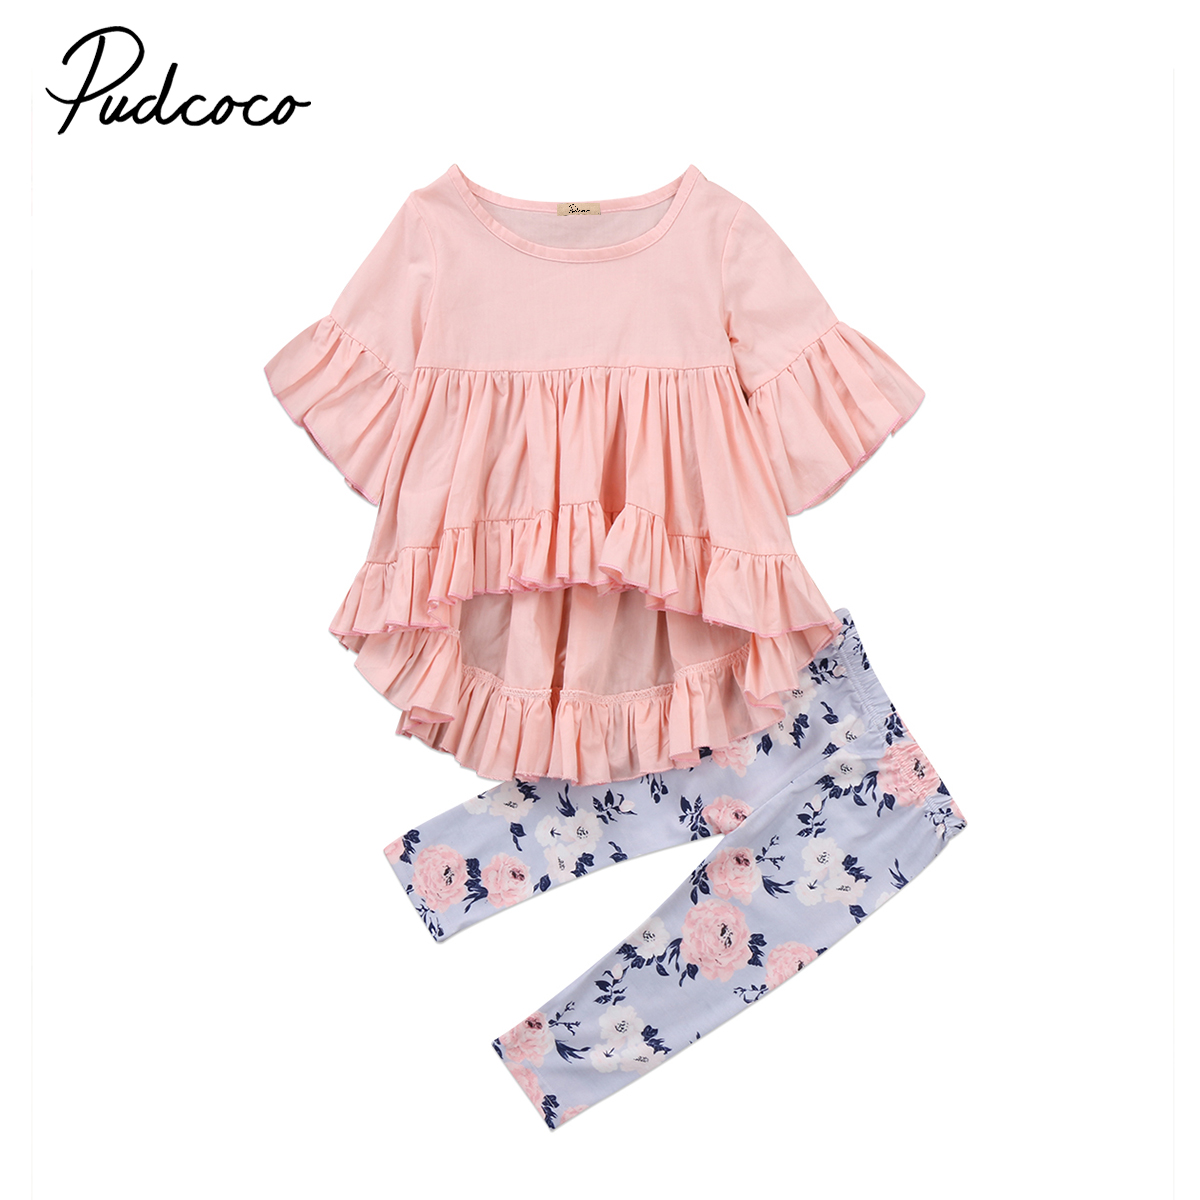 c81f19091a21 Detail Feedback Questions about Toddler Kids Baby Girls Outfits Set Clothes  Long Sleeve T shirt Tops + Floral Pants Leggings 2PCS Set on Aliexpress.com  ...